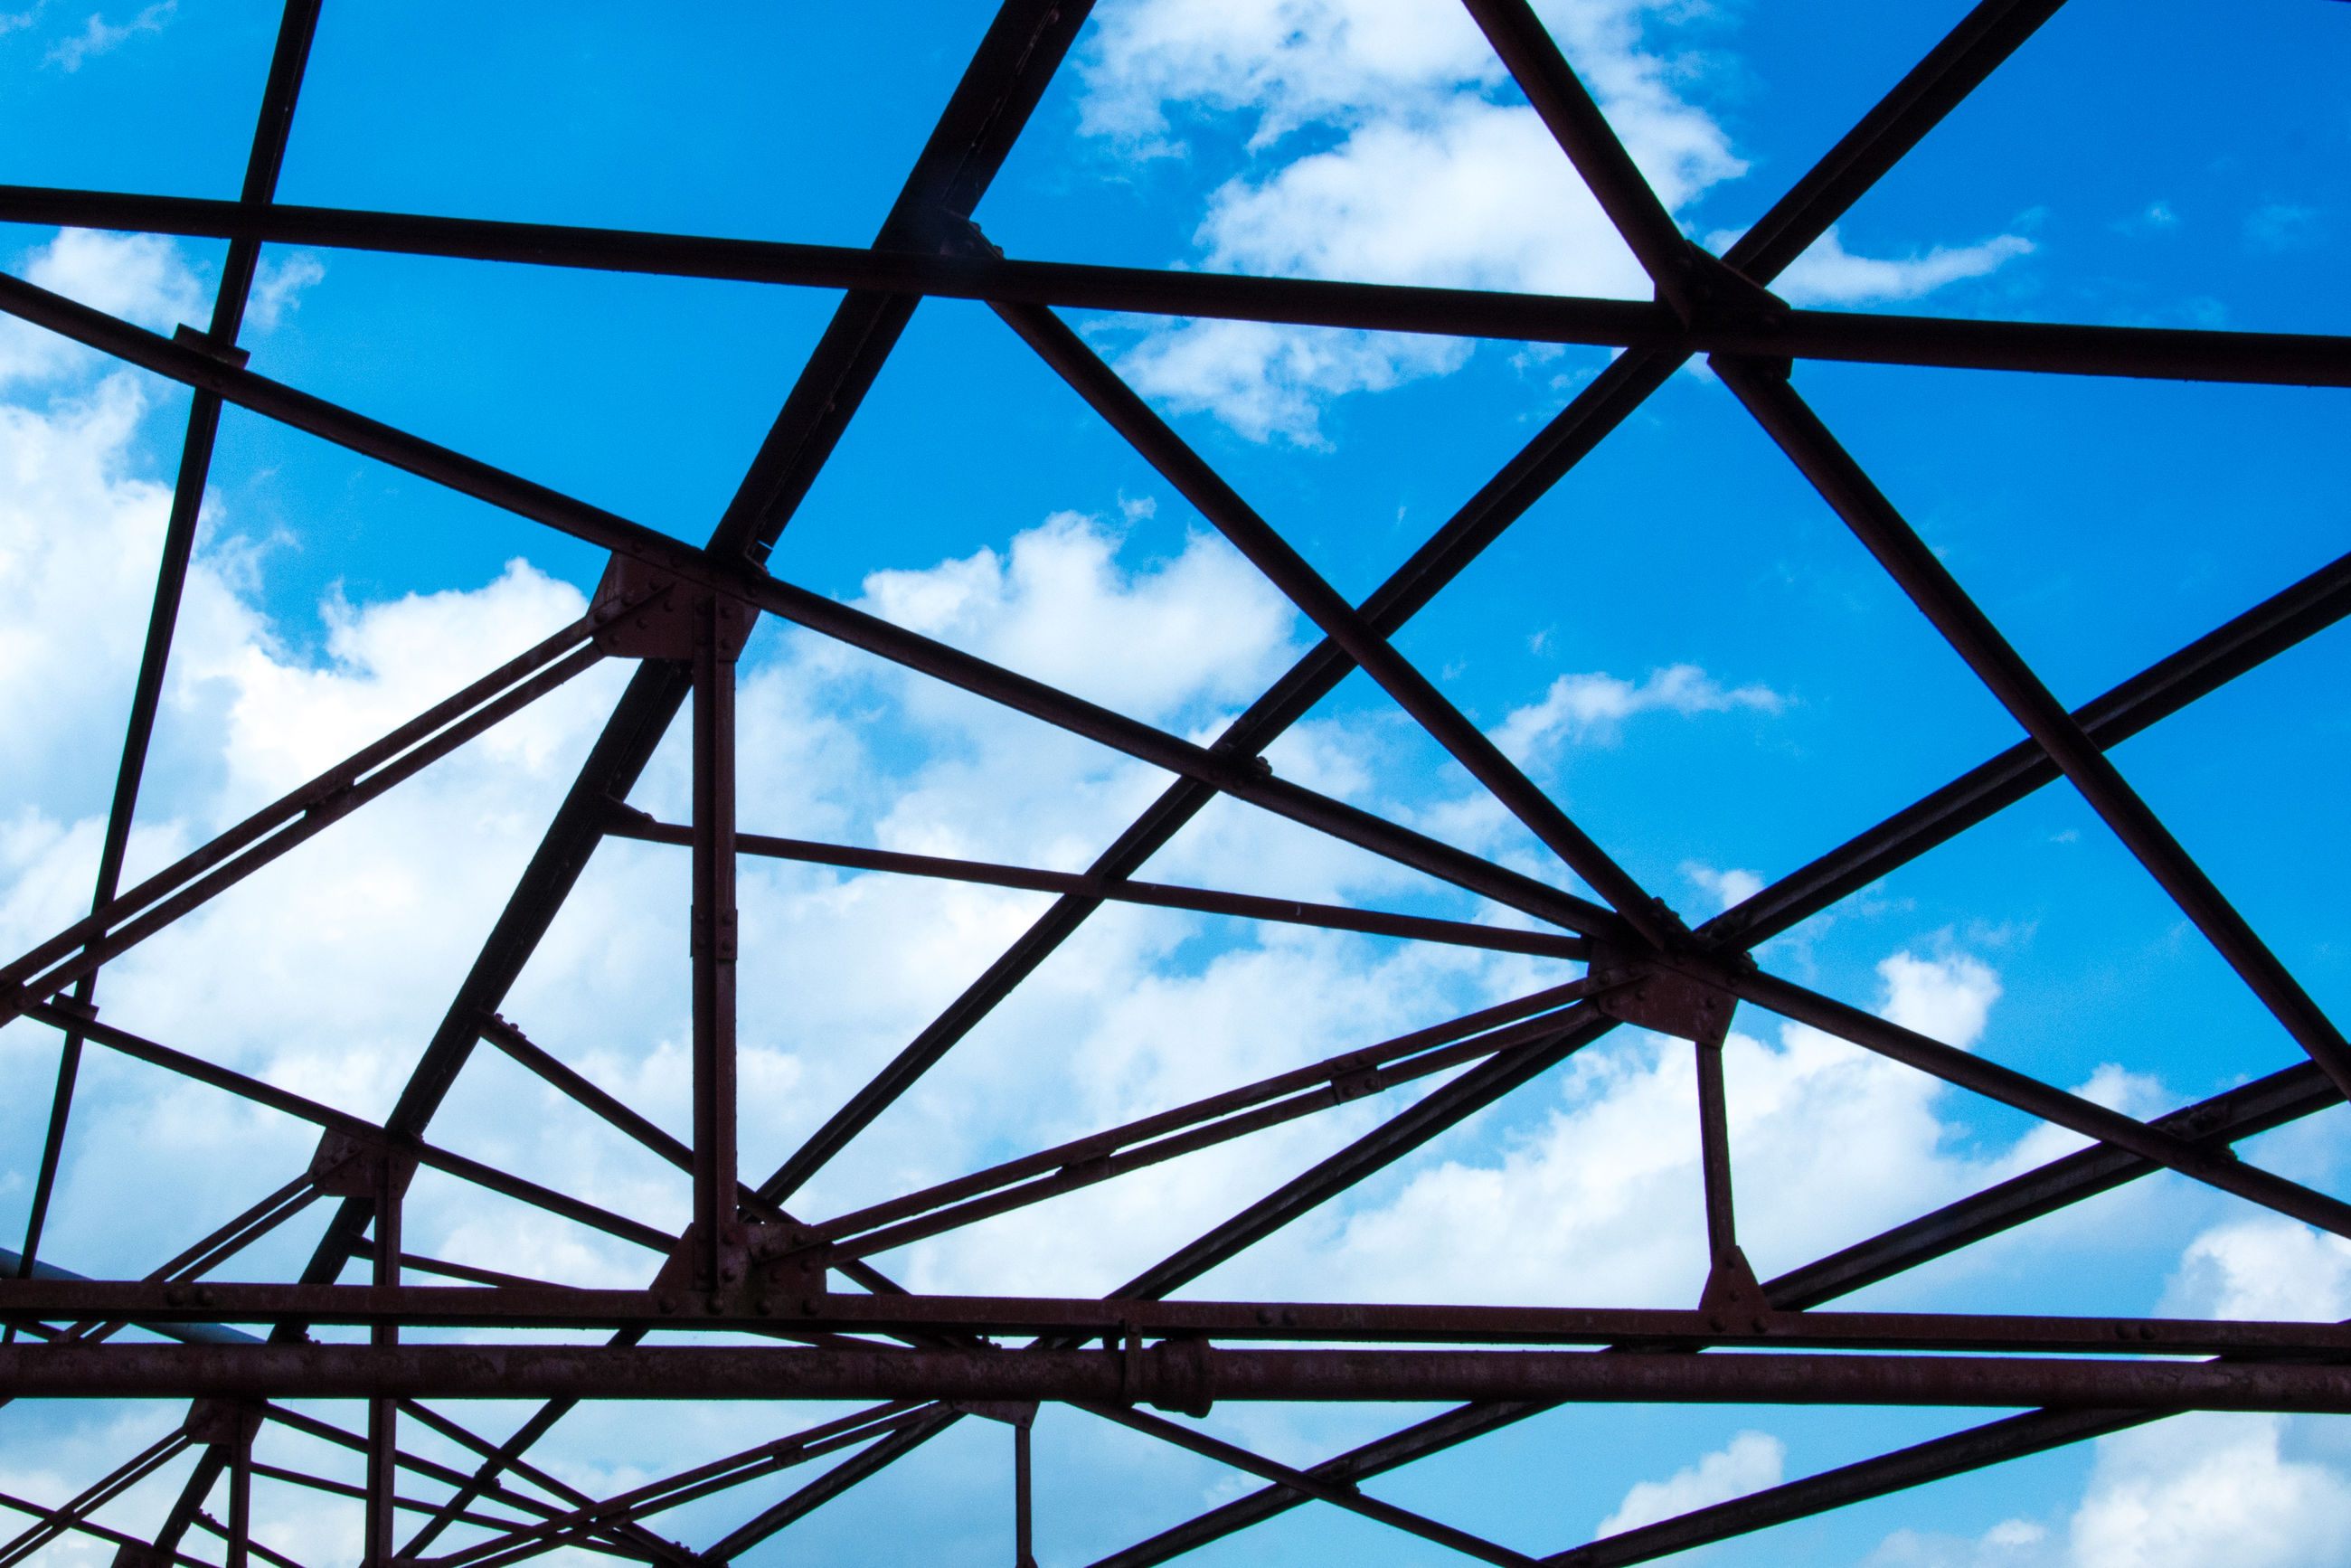 cloud - sky, sky, low angle view, day, no people, blue, built structure, architecture, indoors, close-up, nature